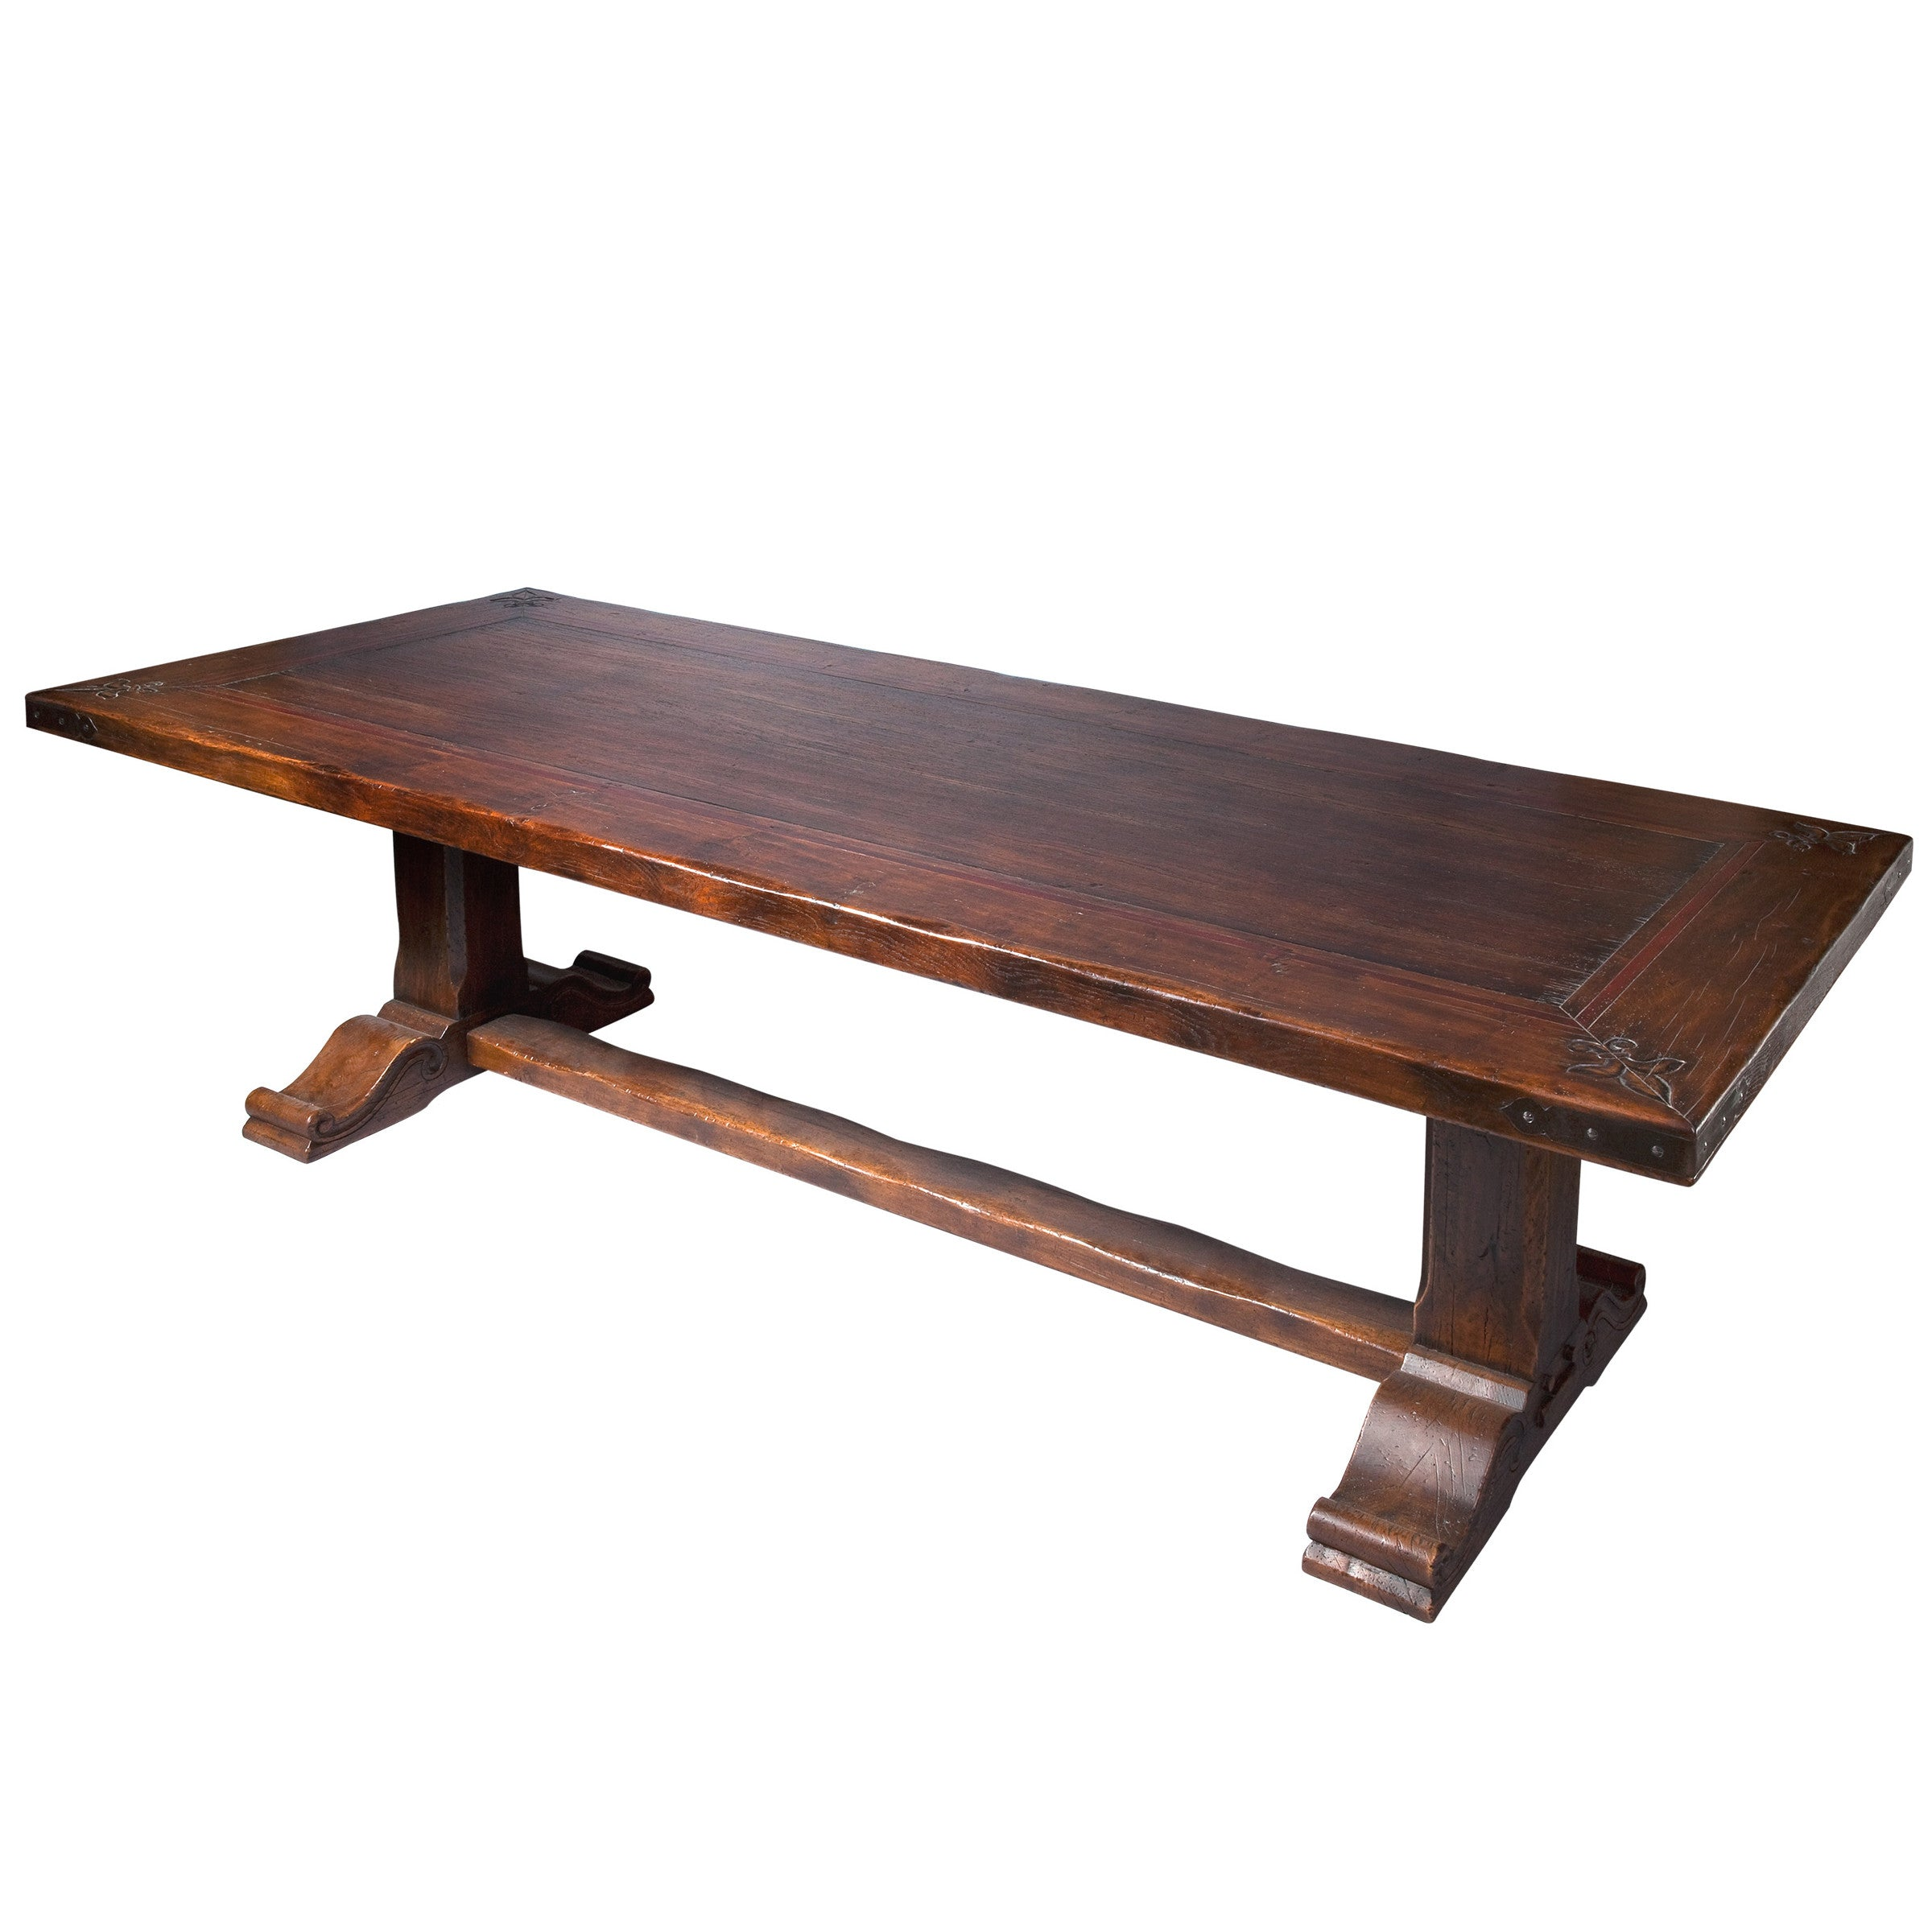 Prieure Table